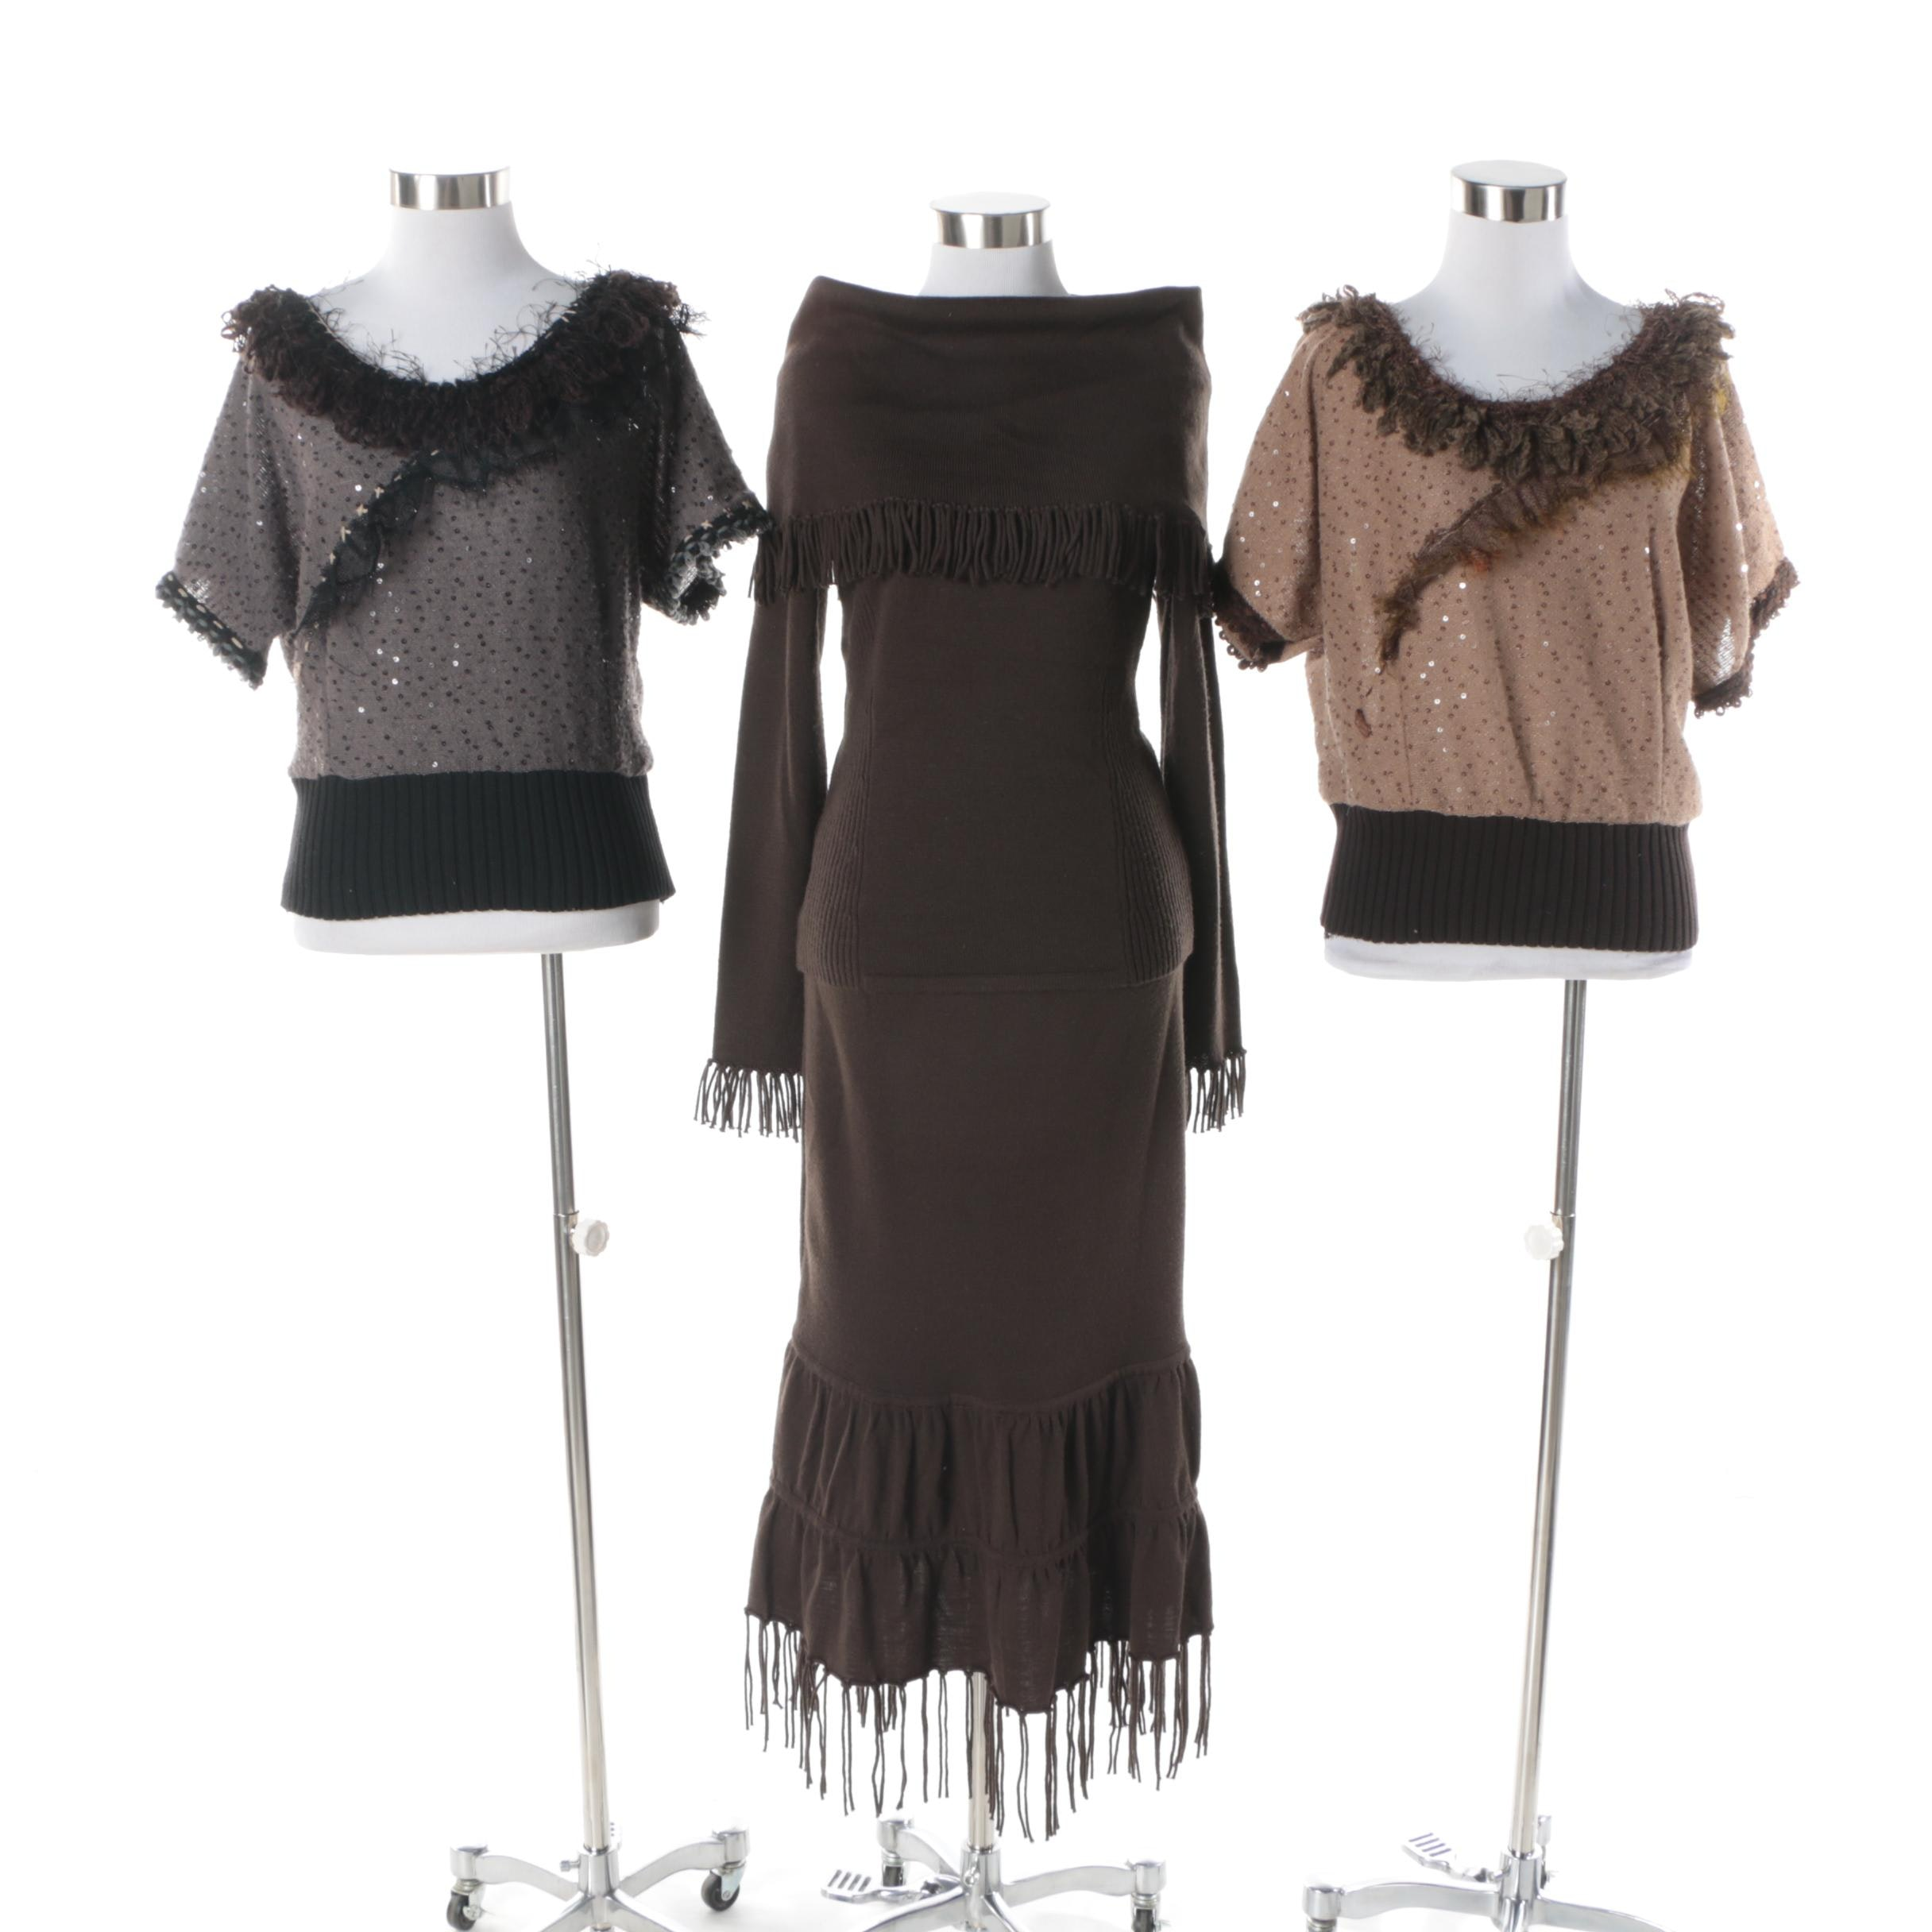 Colette Mordo Fringed Knit Ensemble and Forla Paris Sweaters